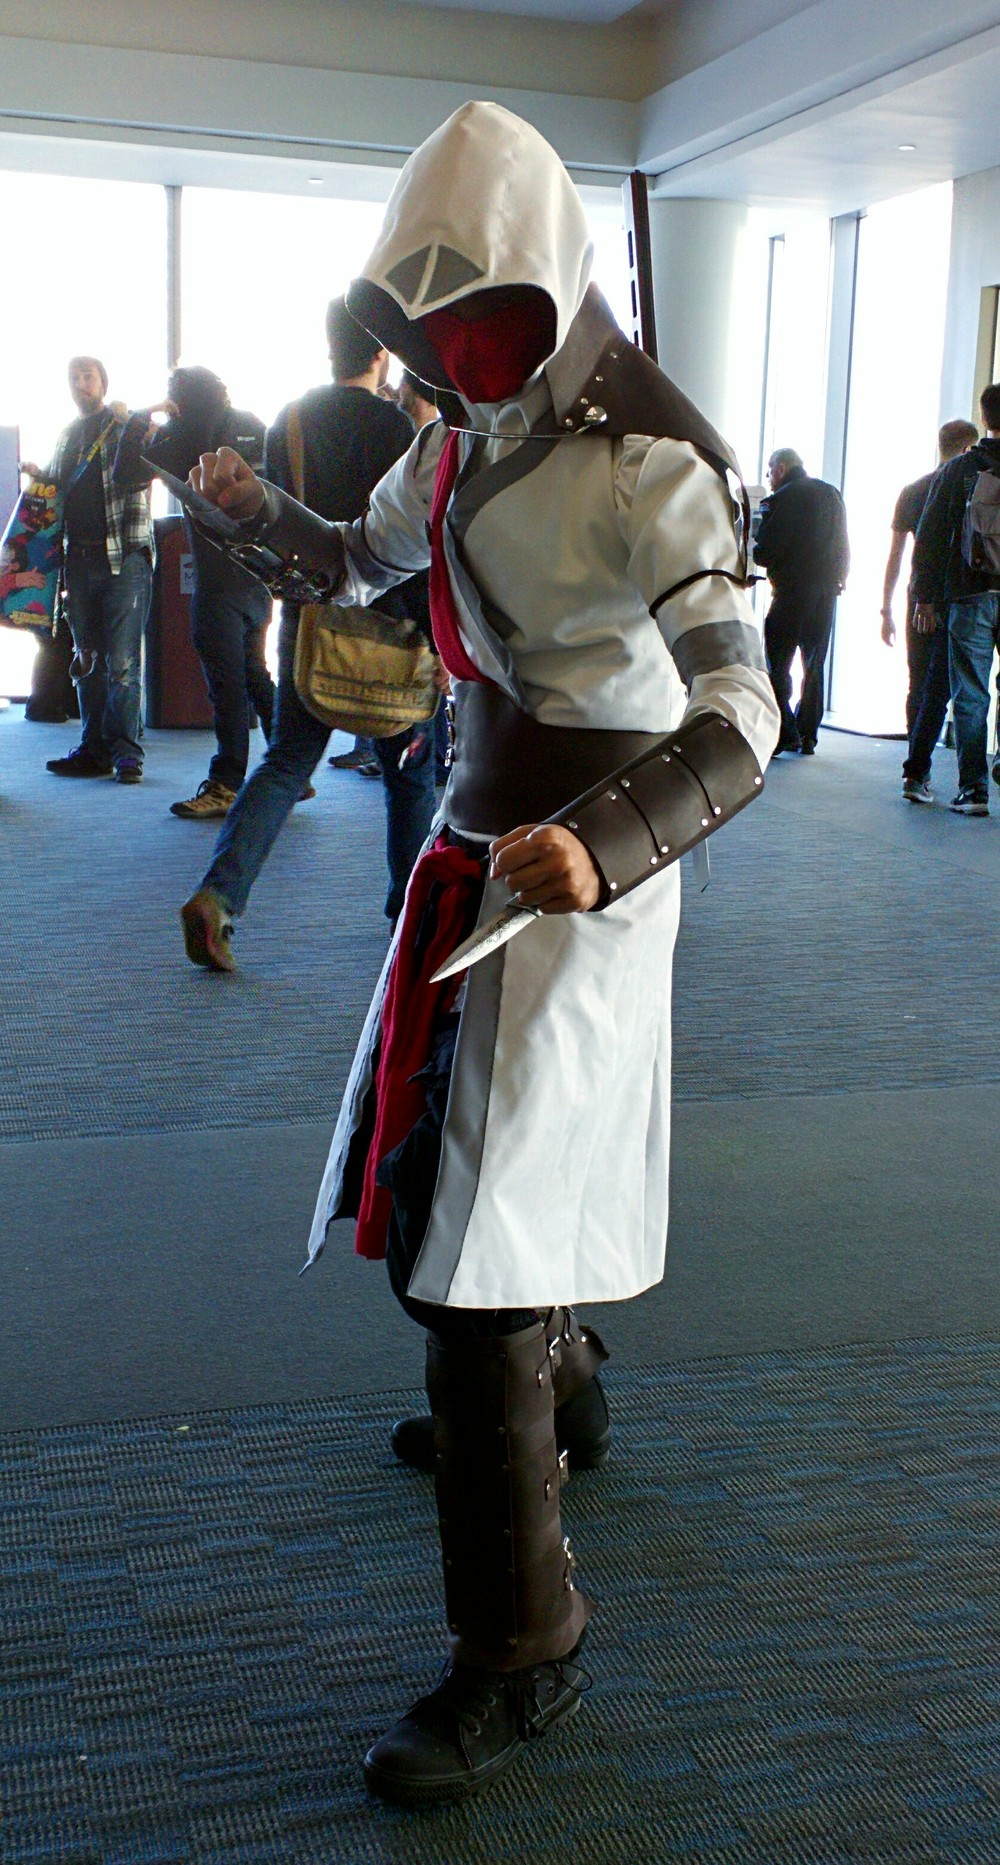 Altair, Assassin's Creed.